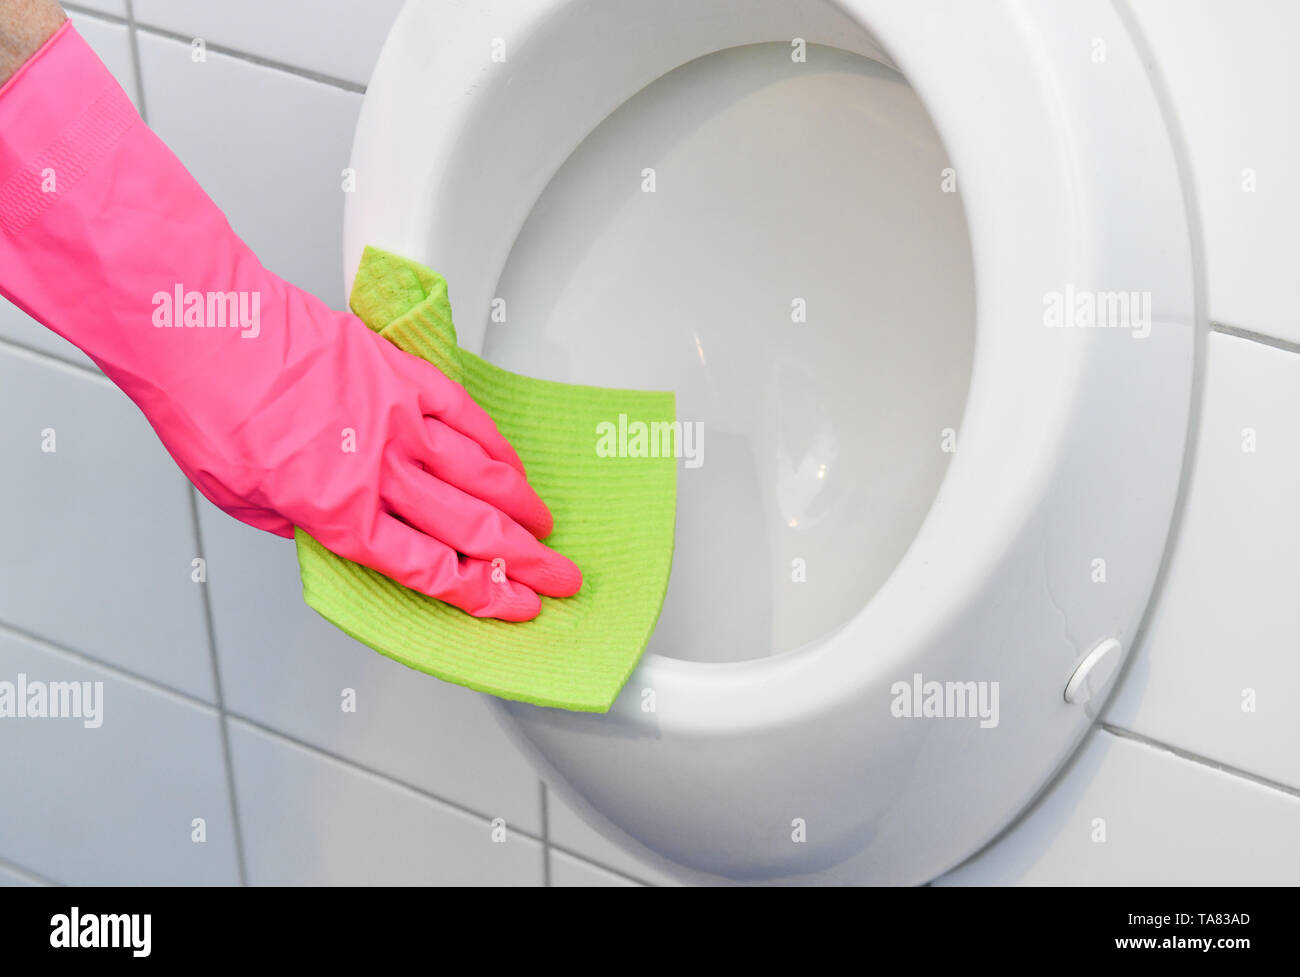 Cleaning, bathroom, Urinal, Reinigung, Badezimmer Stock Photo